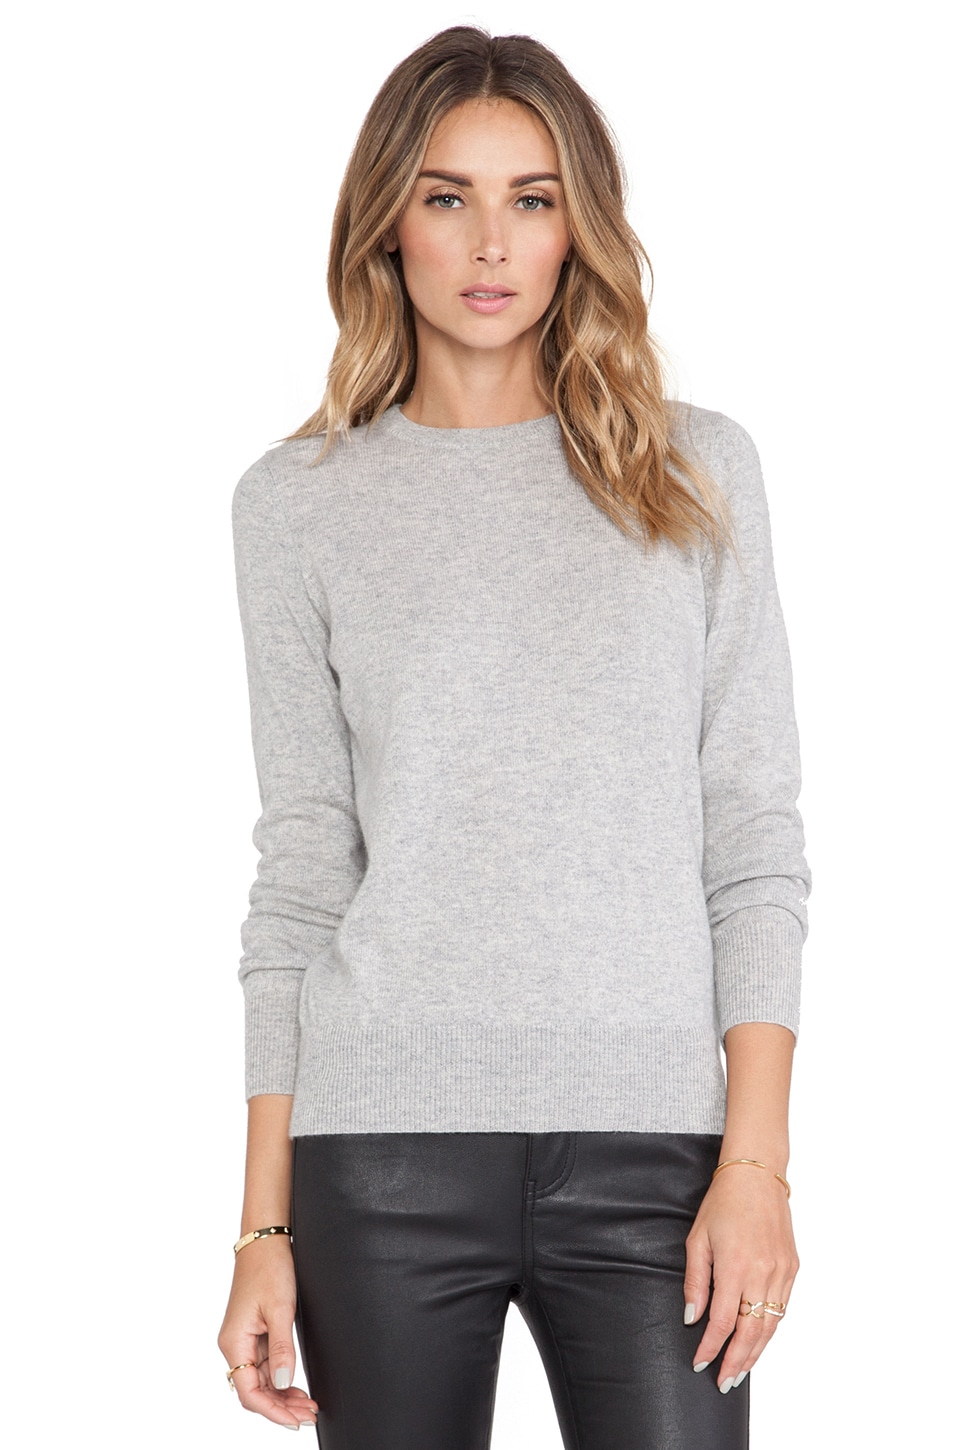 DemyLee Joie Cashmere Sweater in Light Heather Grey | REVOLVE